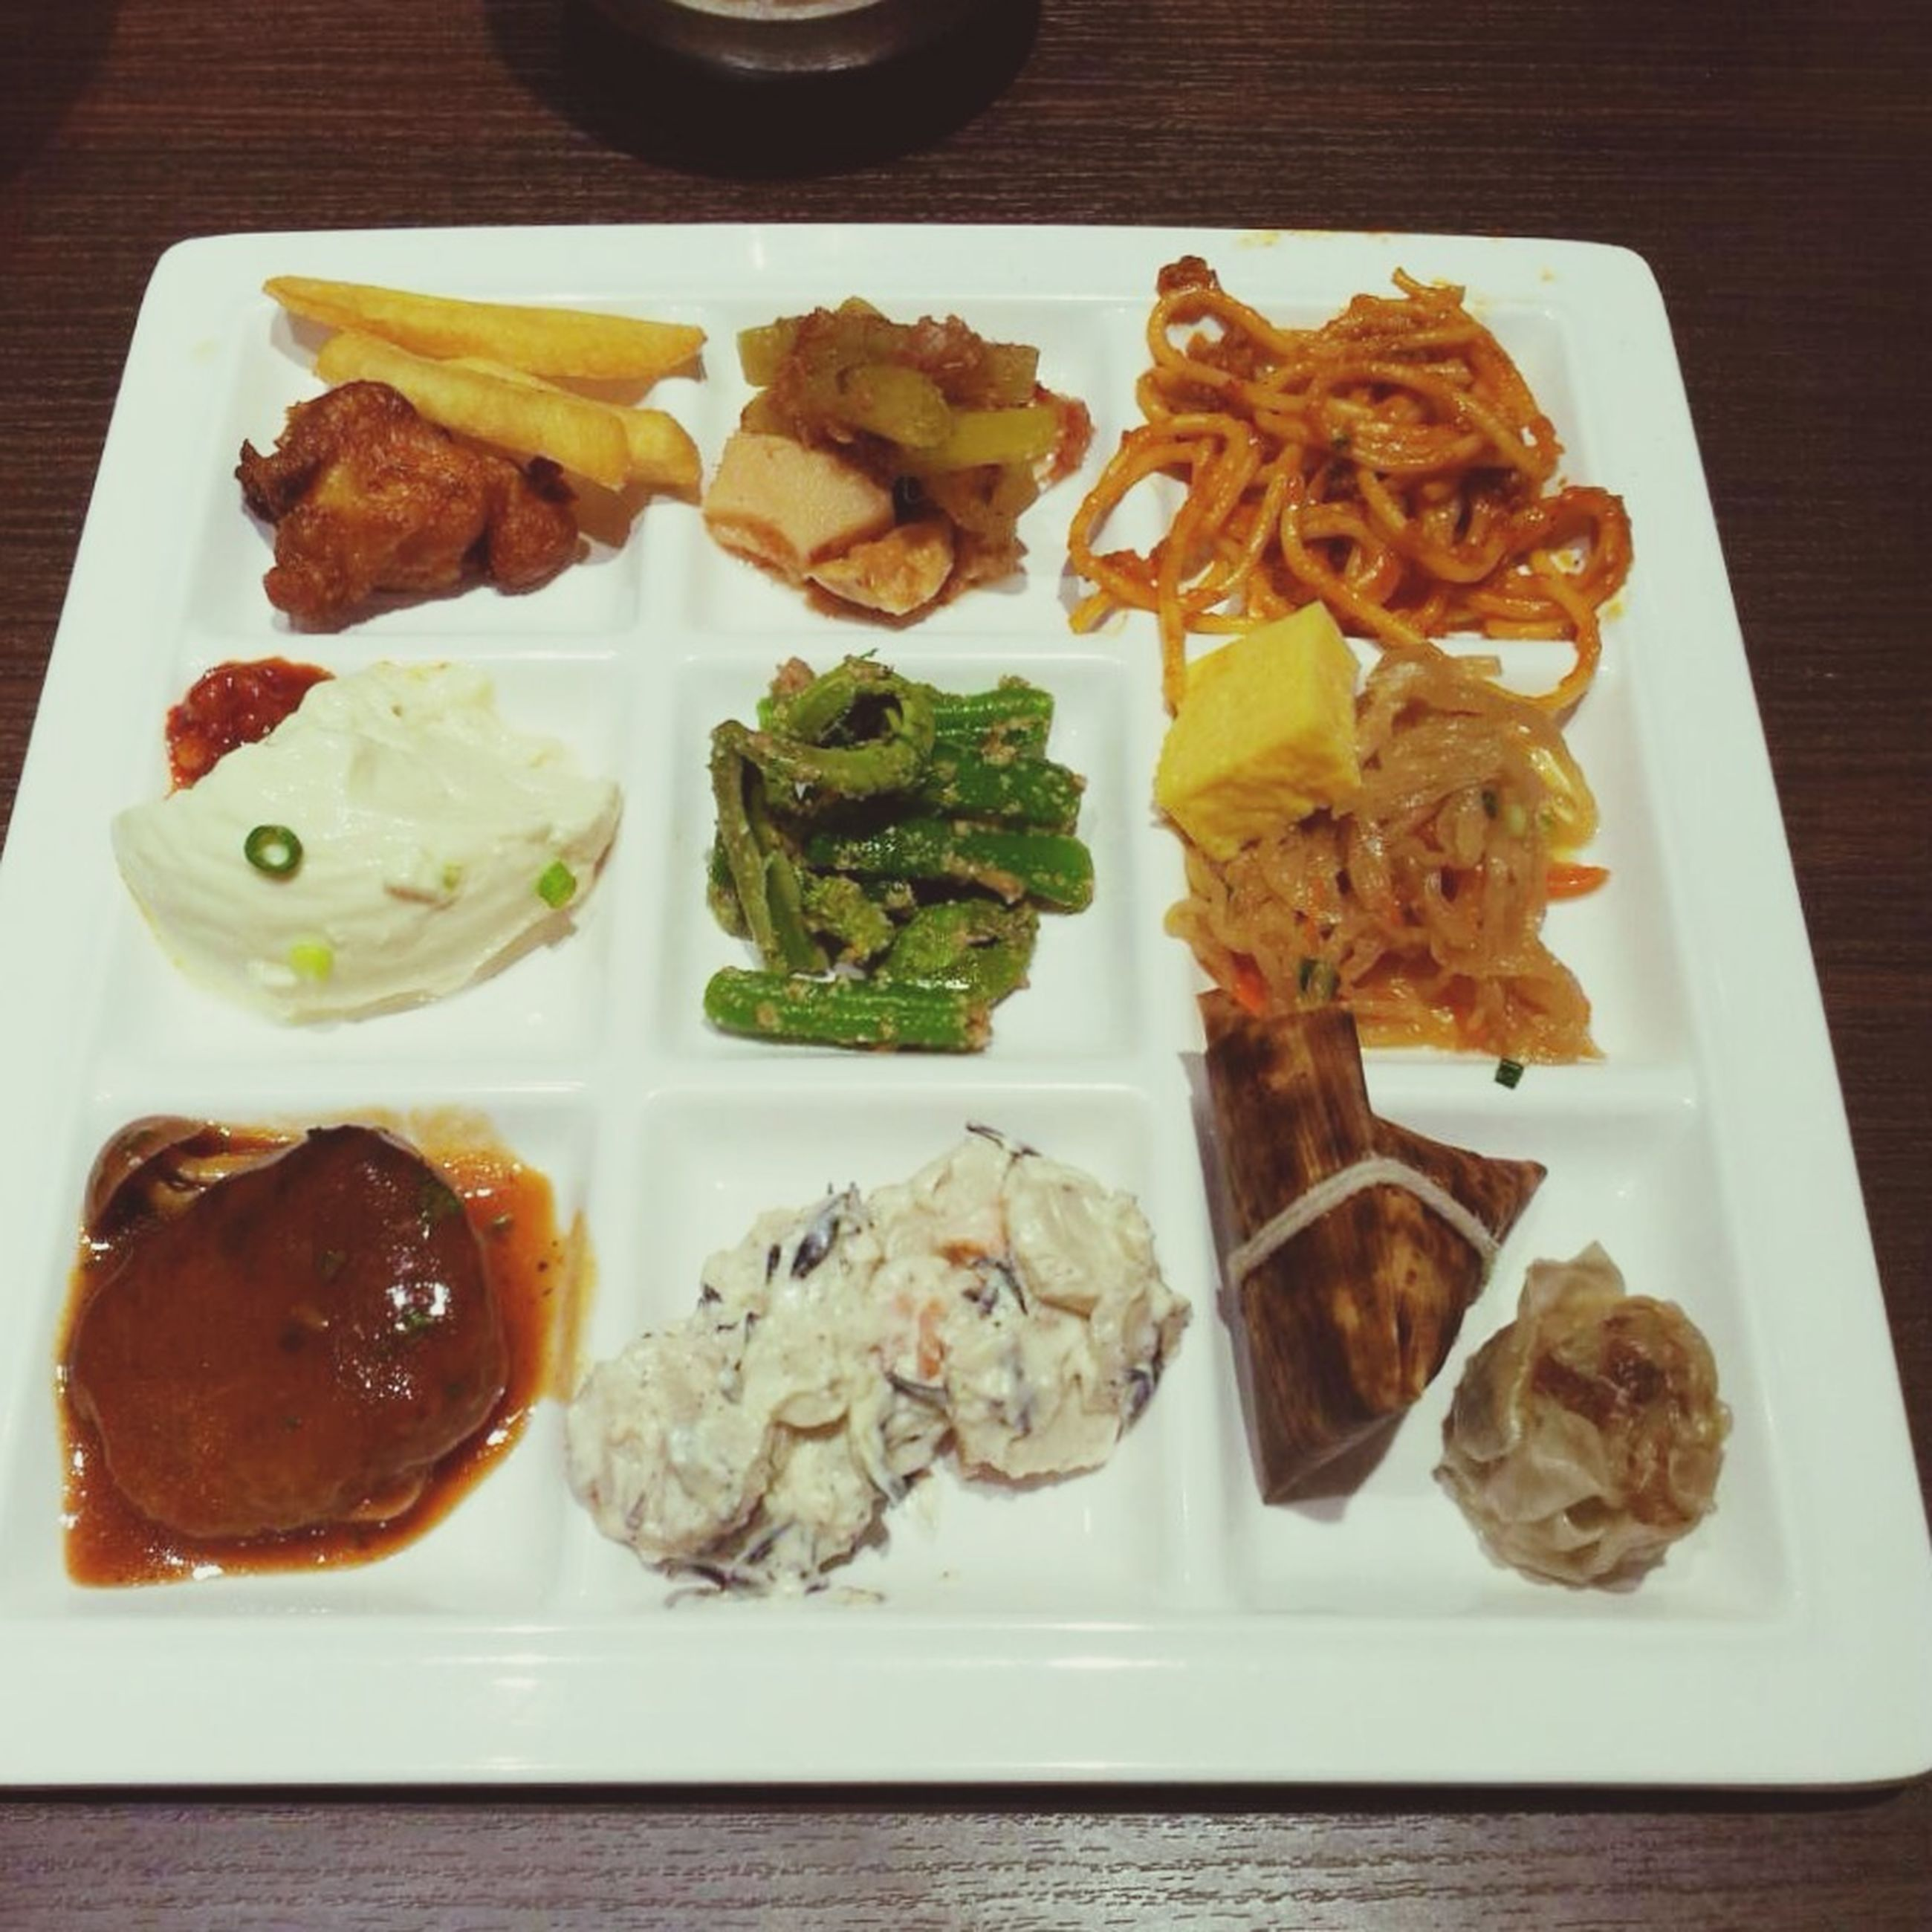 food and drink, food, ready-to-eat, freshness, indoors, plate, still life, meal, serving size, healthy eating, table, meat, high angle view, served, directly above, close-up, sauce, indulgence, appetizer, lunch